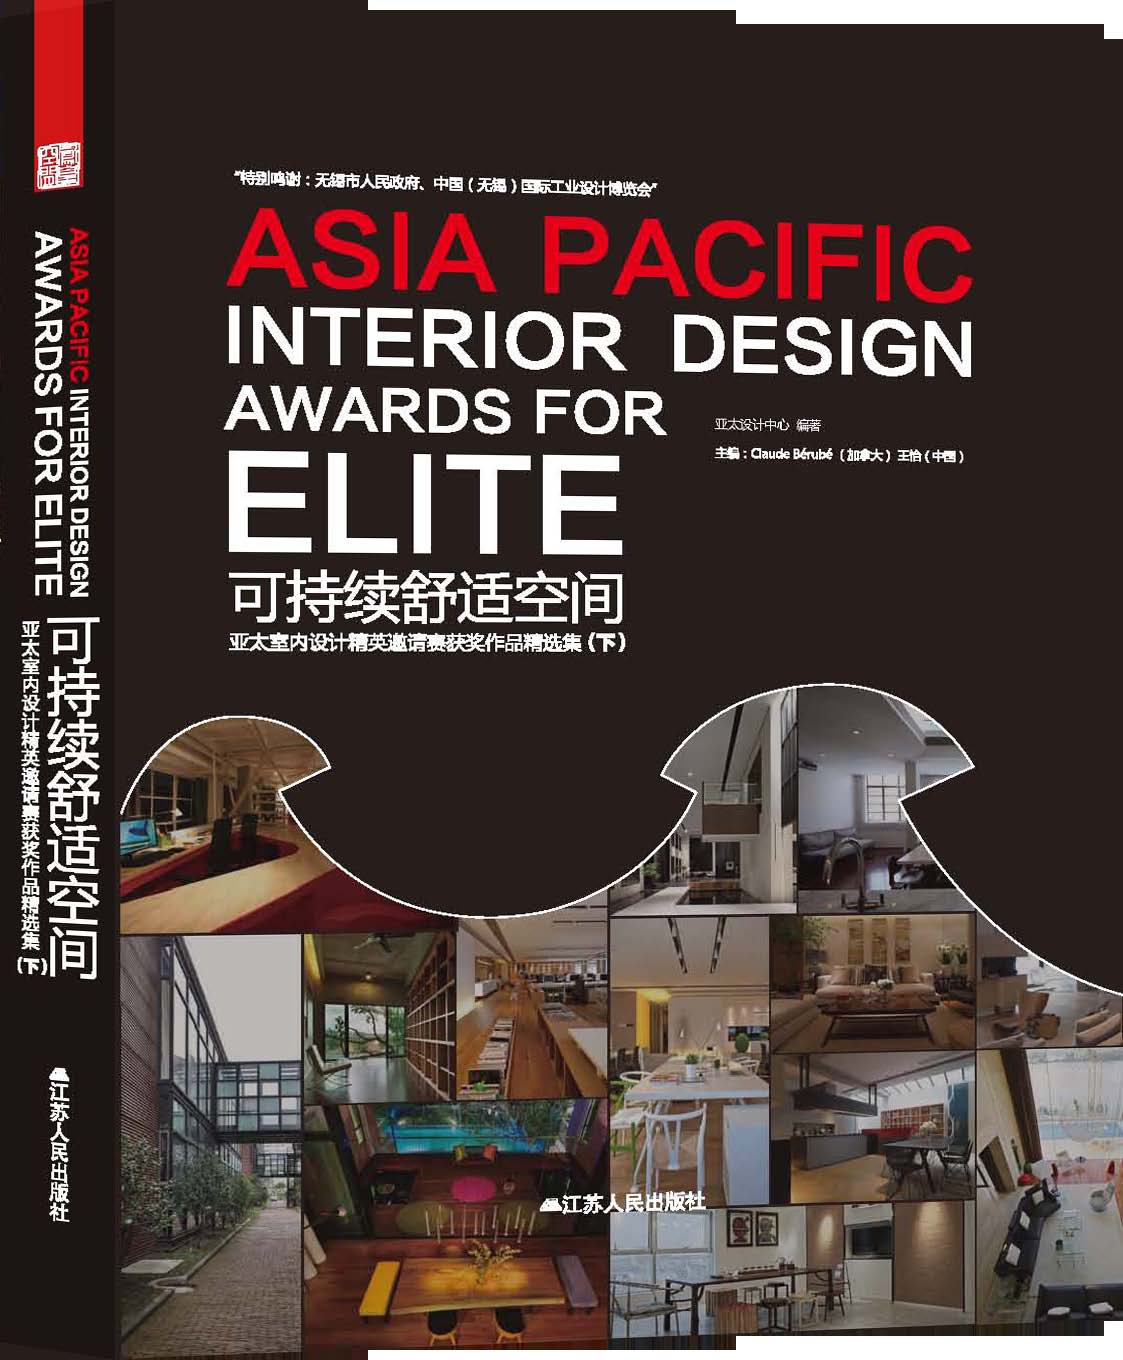 Book Name Asia Pacific Interior Design Awards For Elite